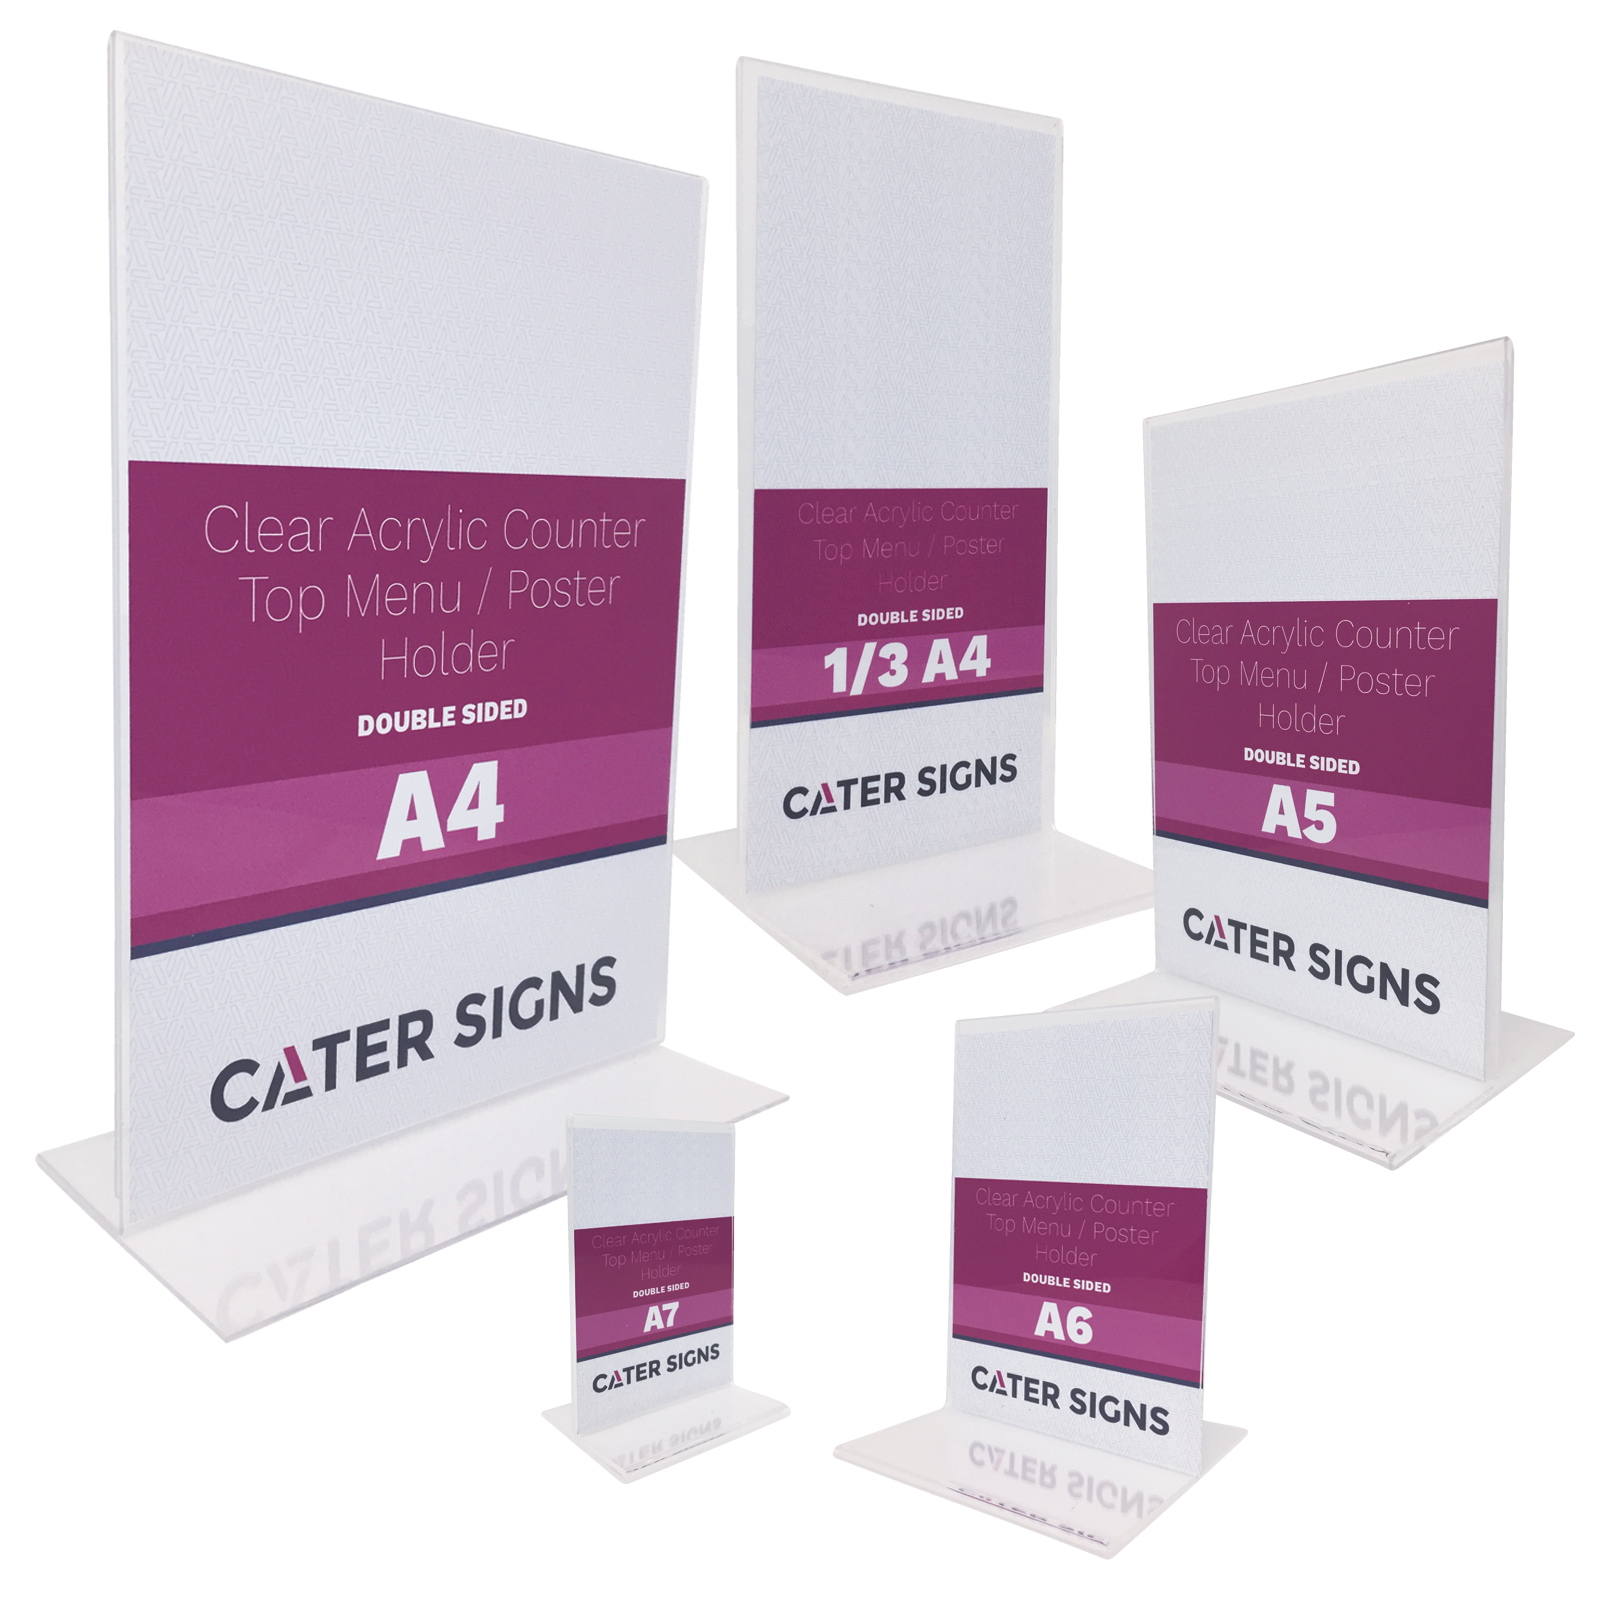 Double Sided Clear Acrylic Poster Holders